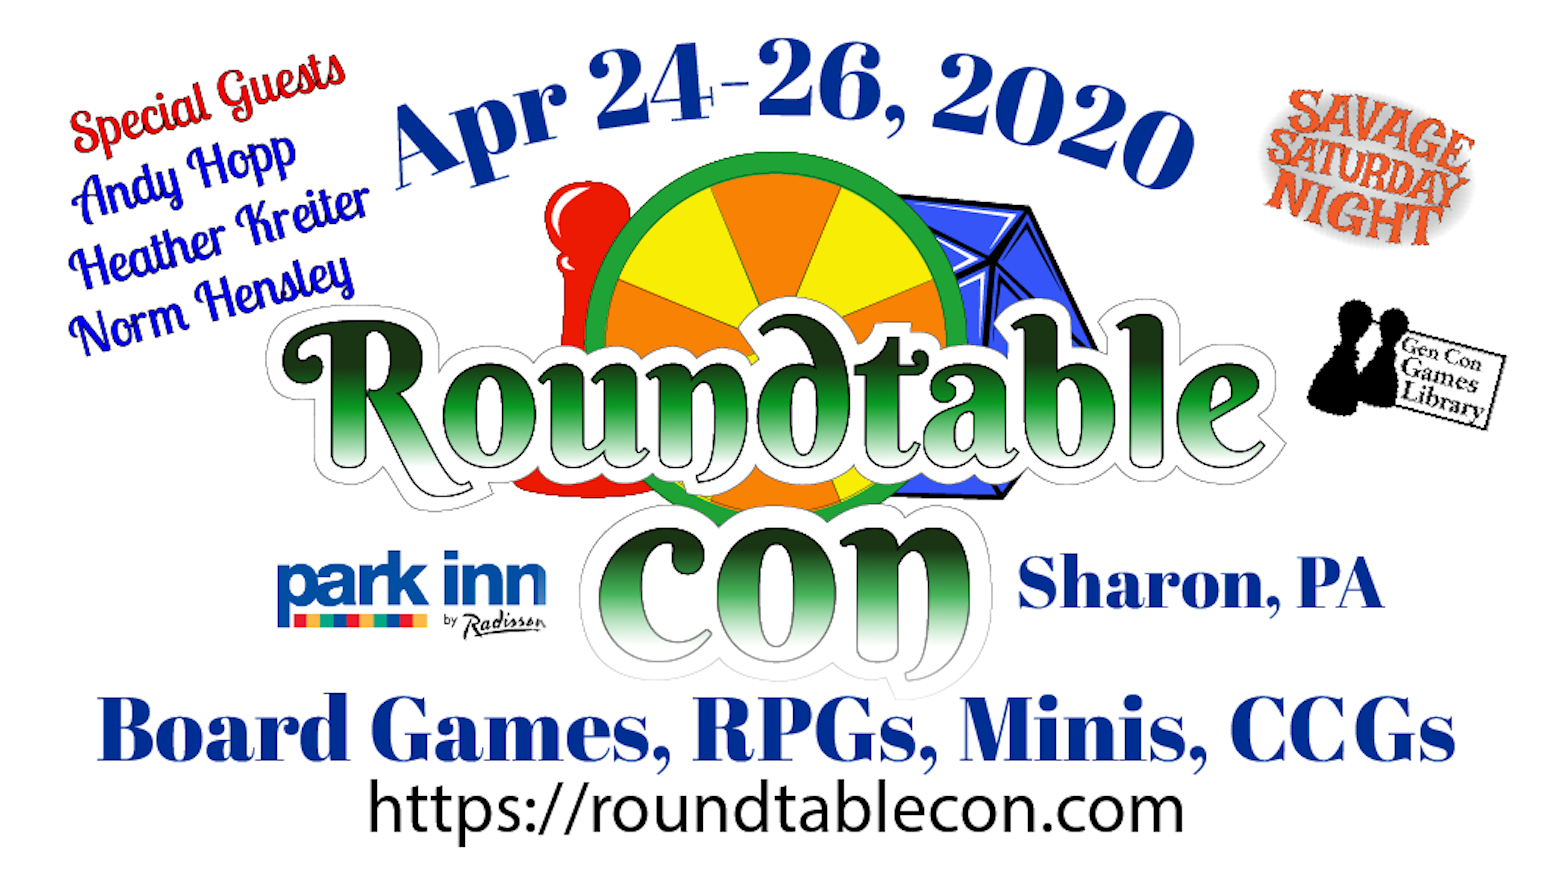 A 3-day tabletop game convention